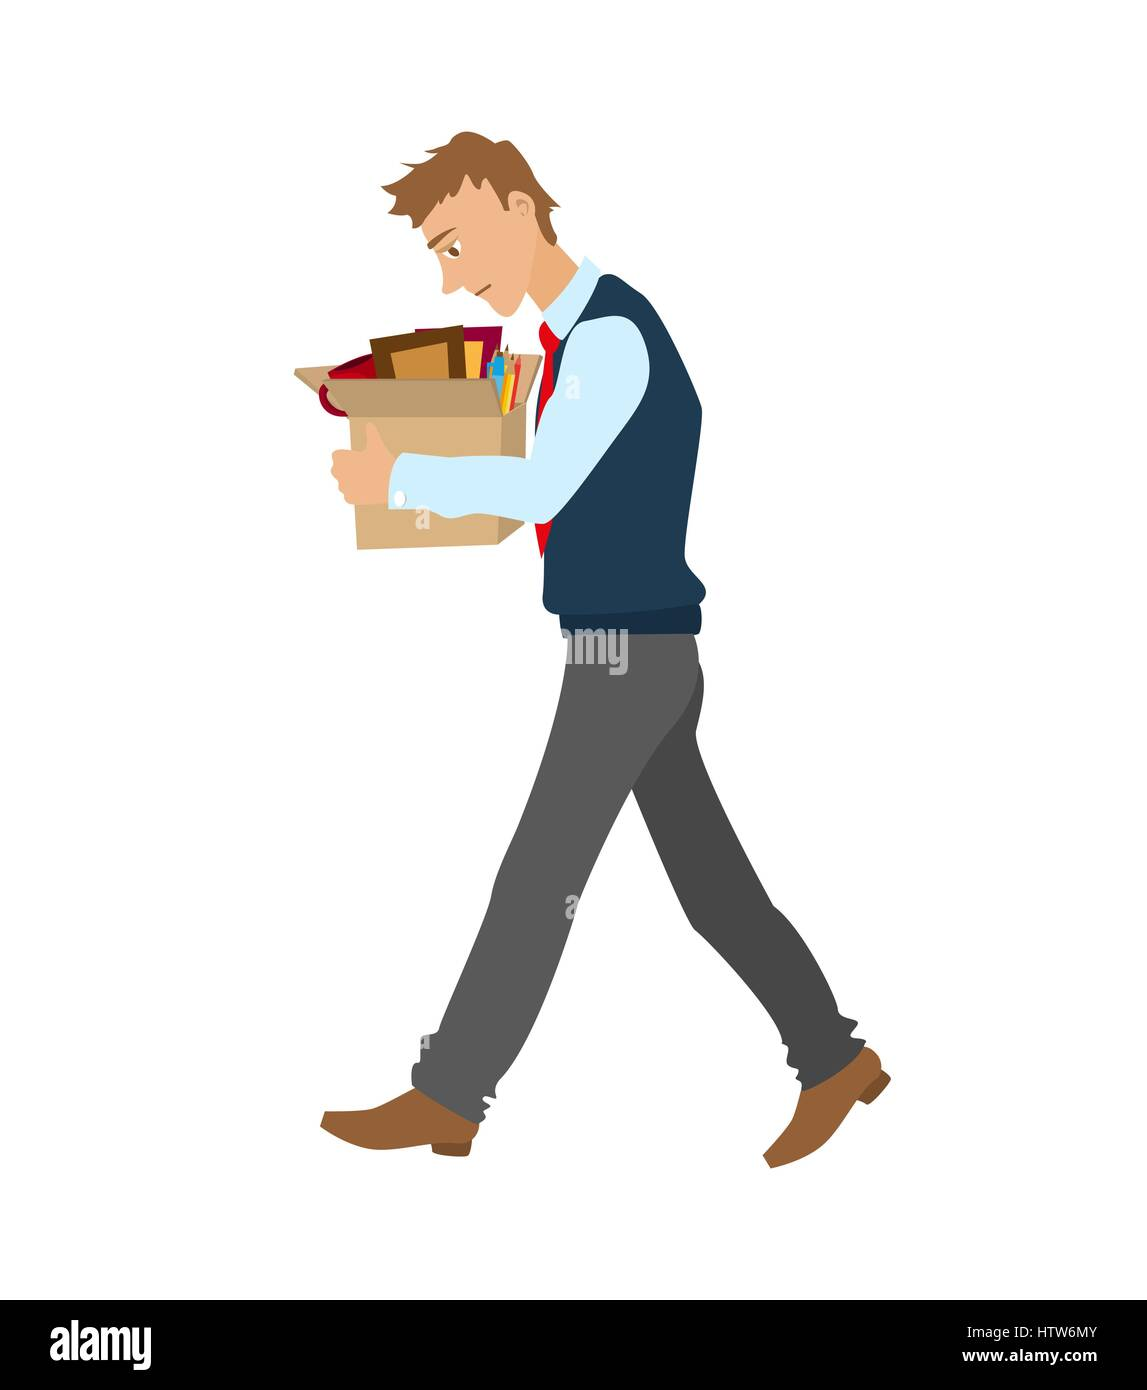 Getting fired flat vector illustration. man dismissed from work going with a box of personal belongings. - Stock Vector